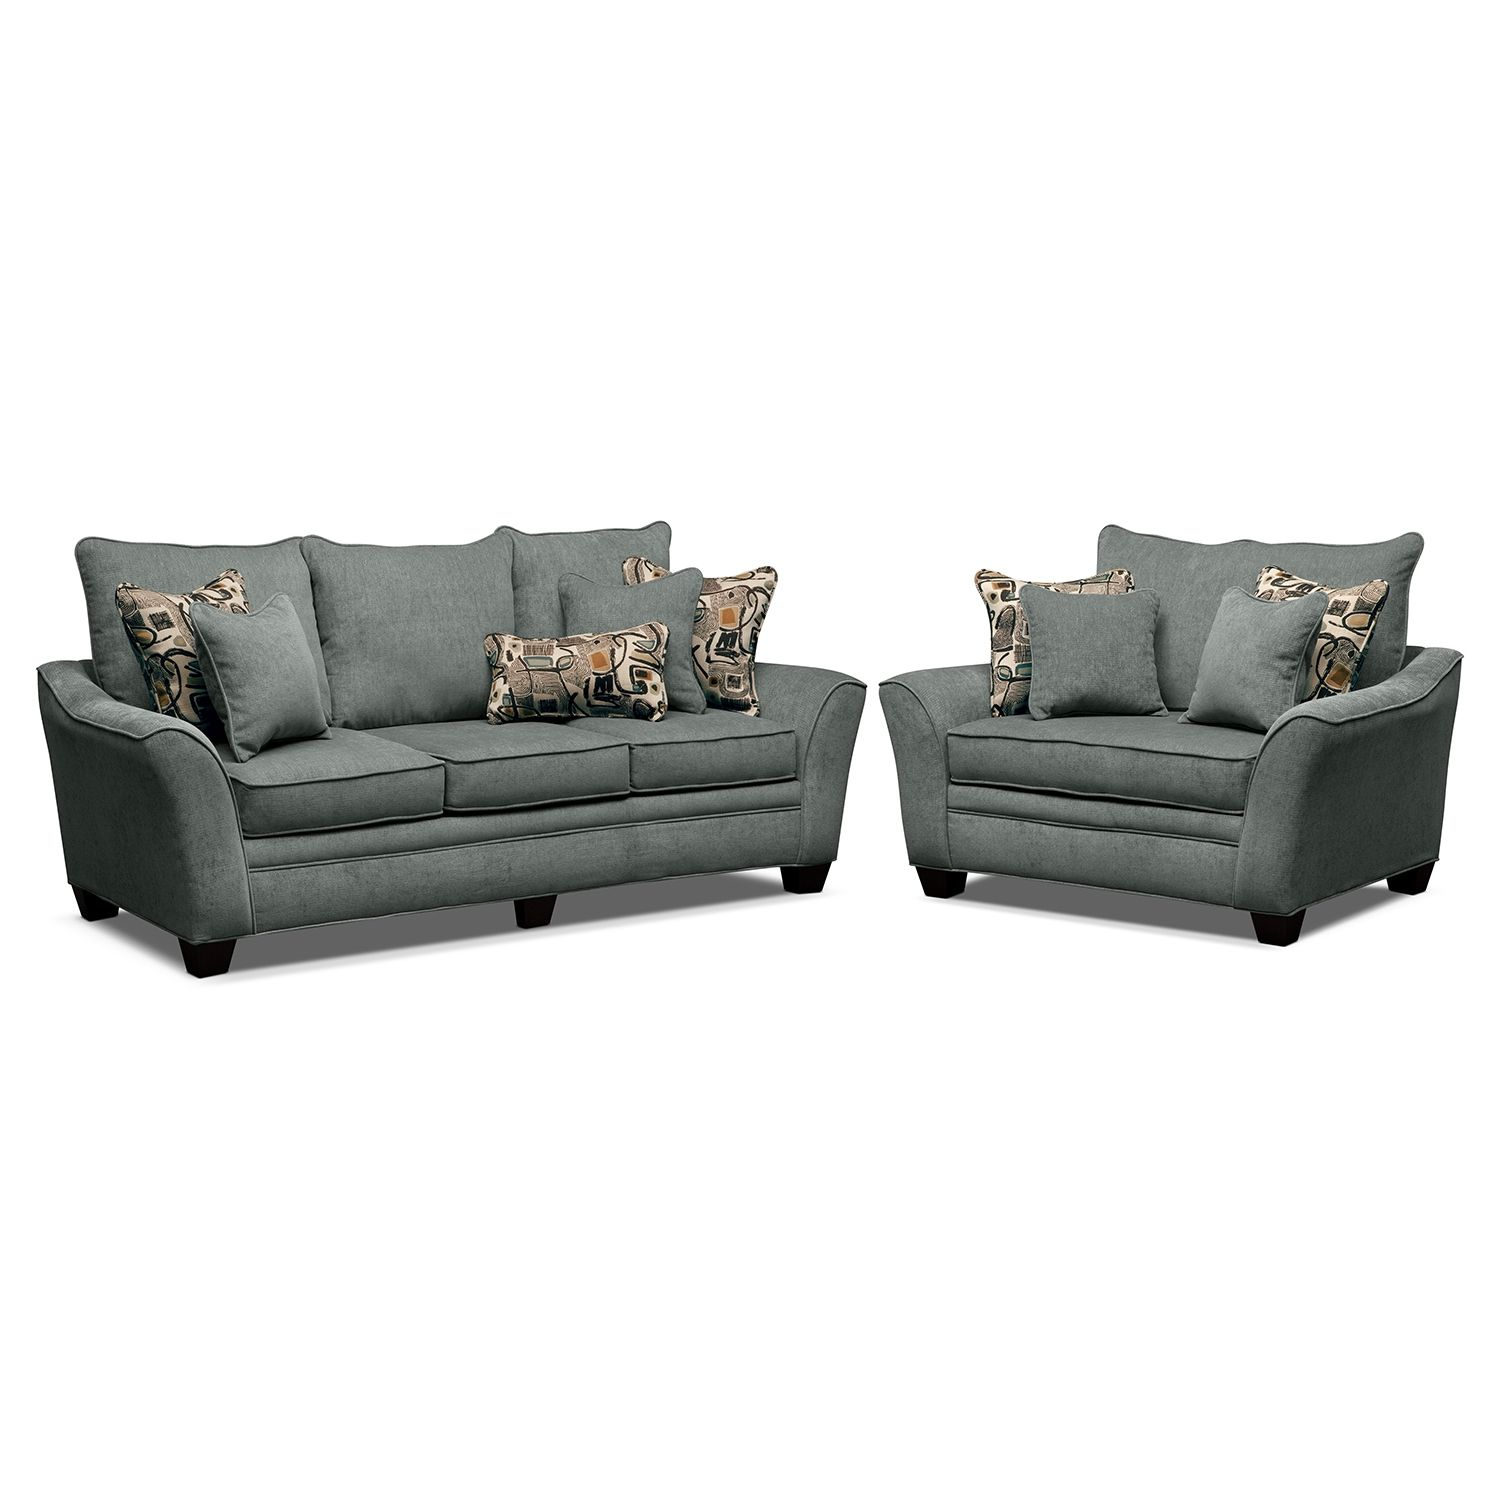 Living Room Chair And A Half Living Room Furniture Mandalay Ii 2 Pc Living Room W Chair And